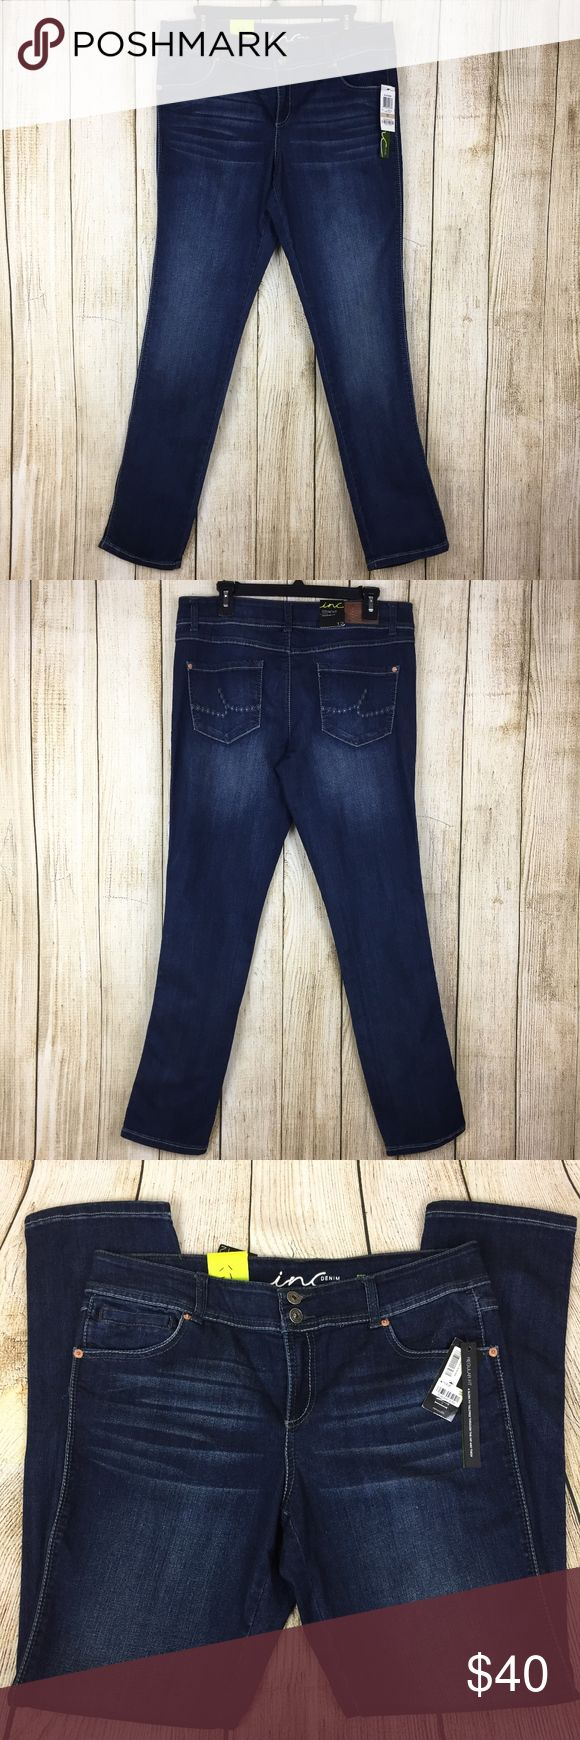 """NEW INC Dark Wash Straight Leg Relaxed Fit Jeans NEW INC Denim Jeans Size 12 Straight Leg Regular Fit Dark Wash NWT Reg $69.50  Style: Straight Leg Regular Fit Brand: INC International Concepts Size: 12 Material: 52% Cotton 22% Polyester 22% Rayon 1% Spandex Color: Dark Wash Measurements (laying flat):        Waist 17.5""""      Hip 19""""      Rise 10""""      Inseam 32""""      Leg Opening 6.5"""" Condition: New with Tags  Ships in 24 hours!!!  24 INC International Concepts Jeans Straight Leg"""